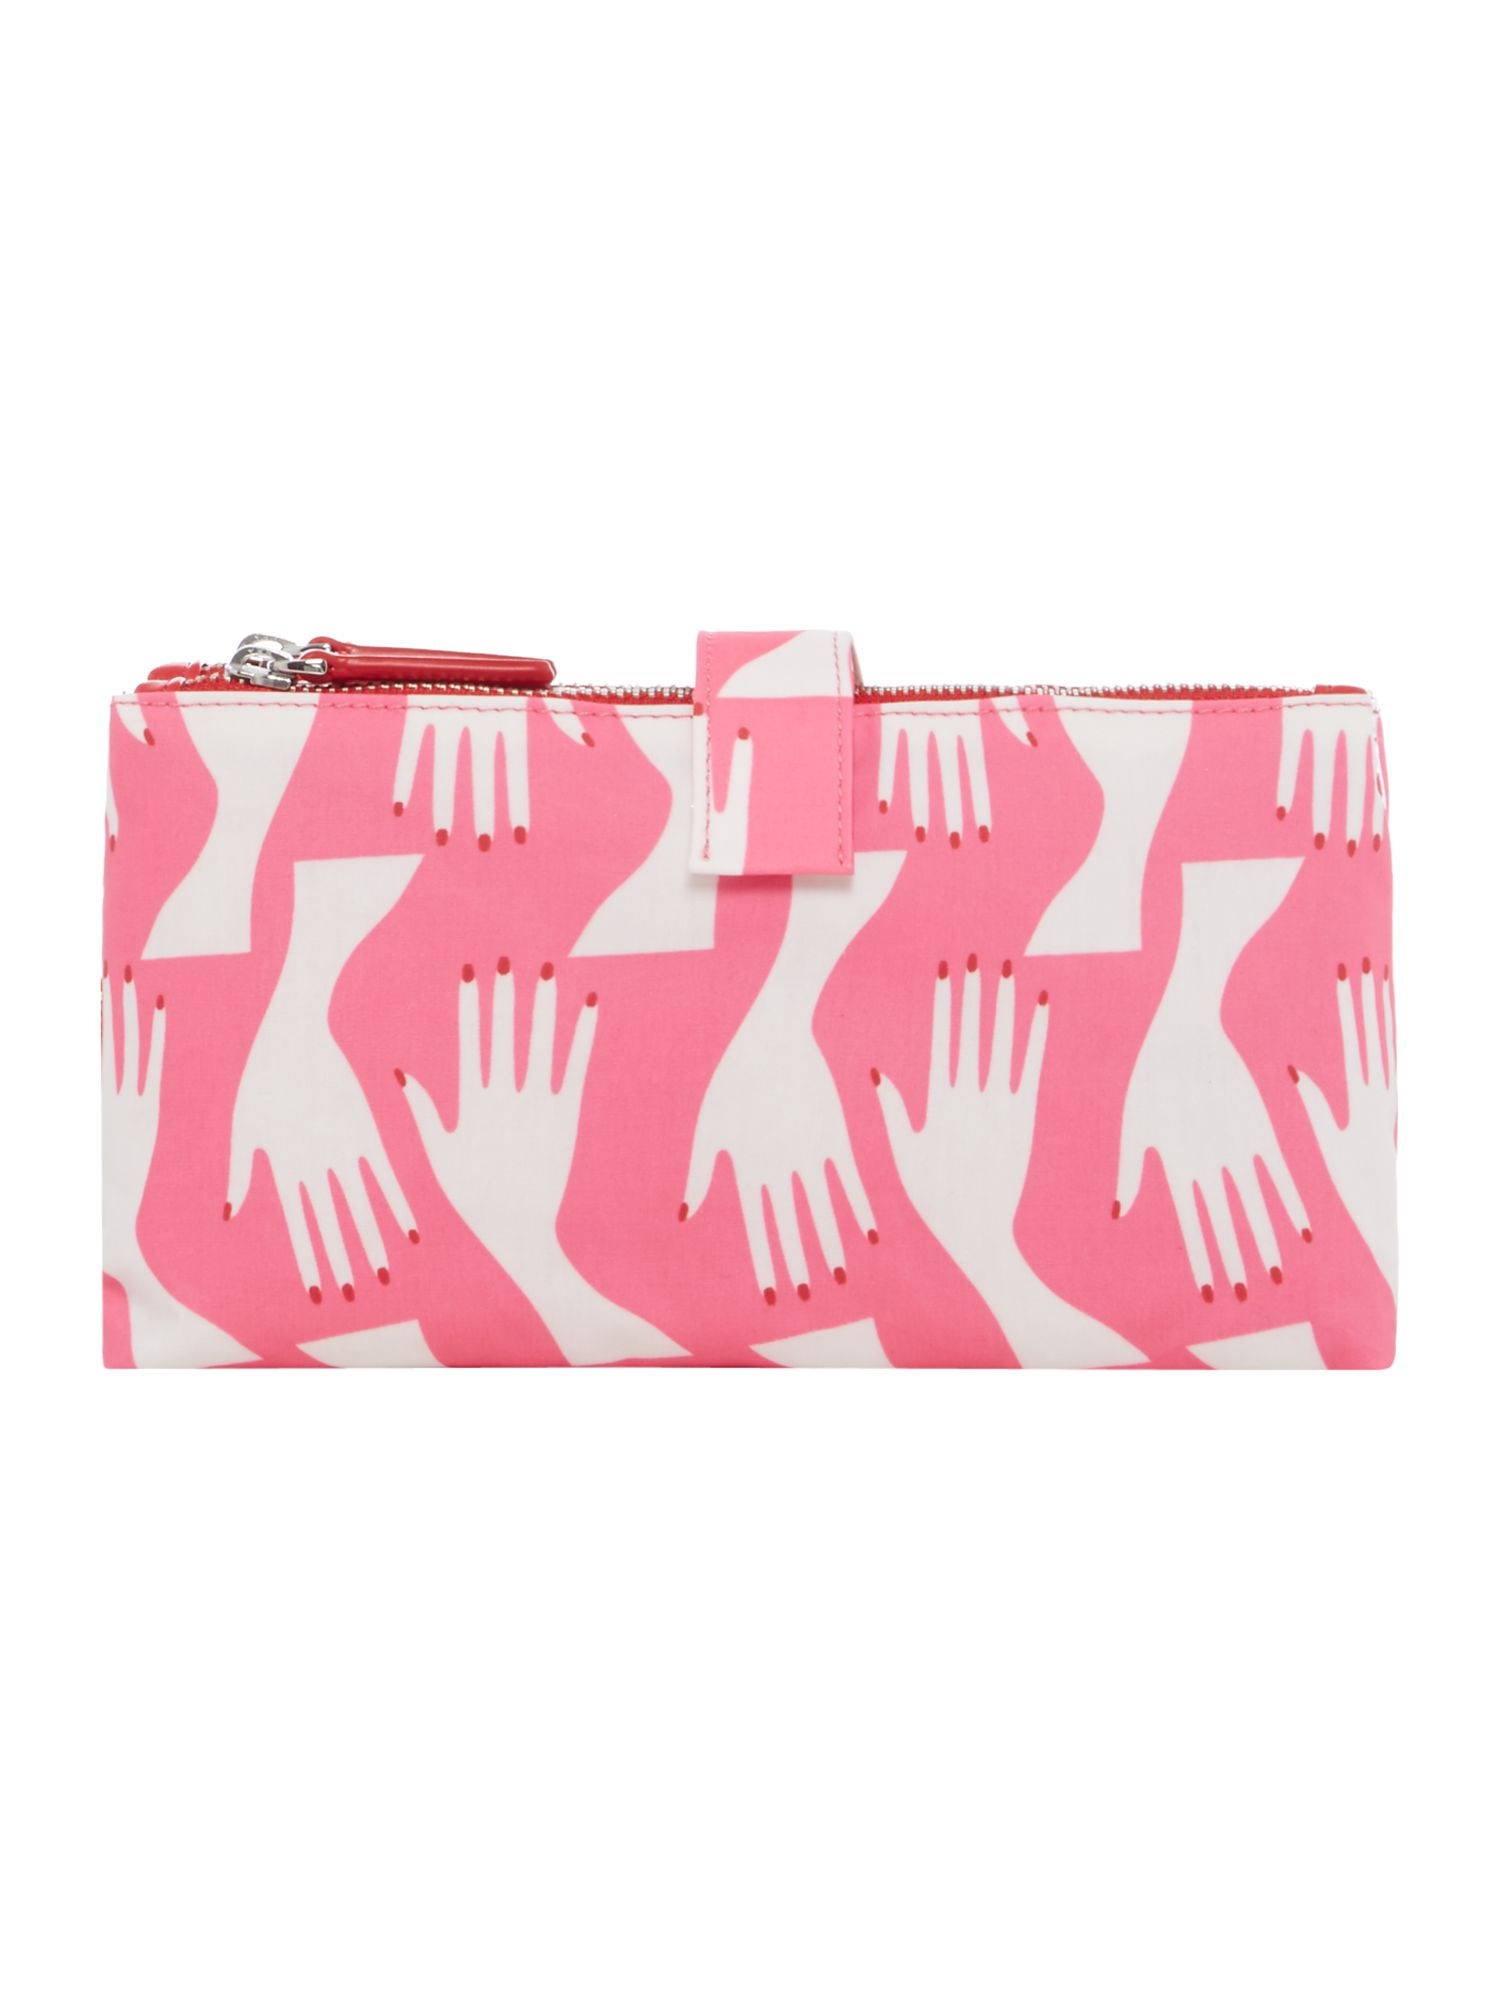 Lulu Guinness Hug Print Double Make Up, Pink